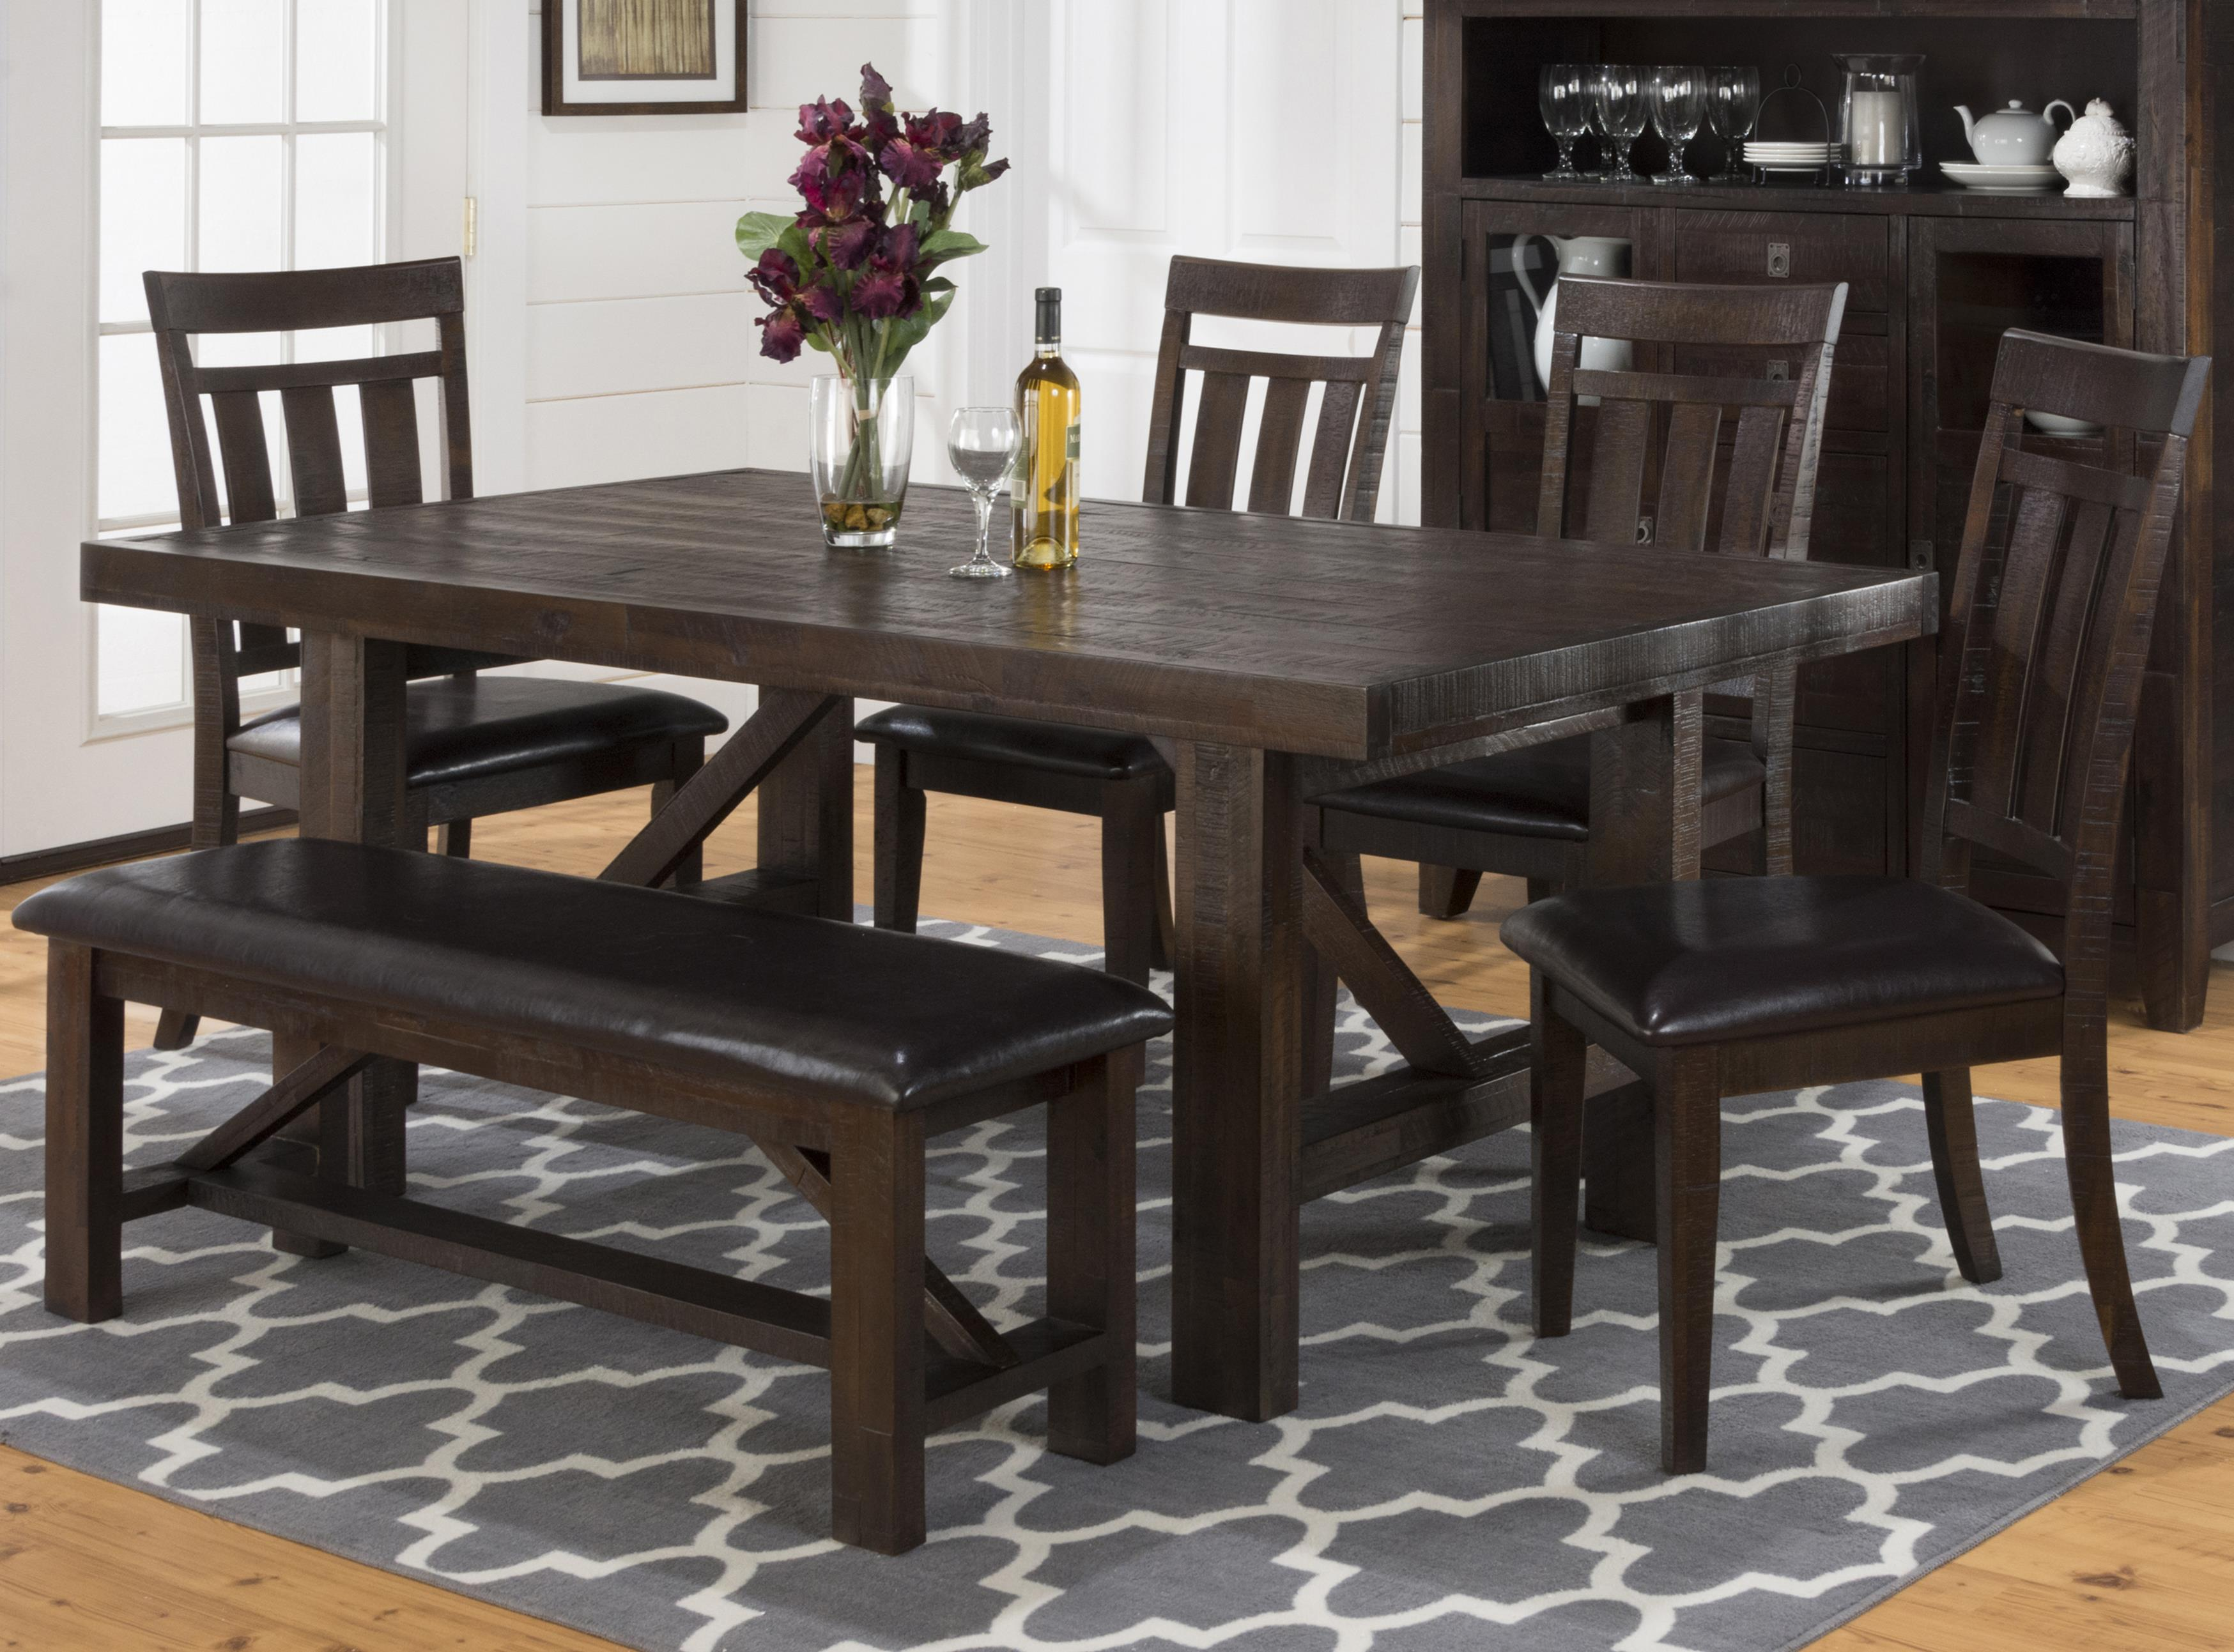 Jofran Kona Grove Dining Table, Chair And Bench Set   Item Number: 705